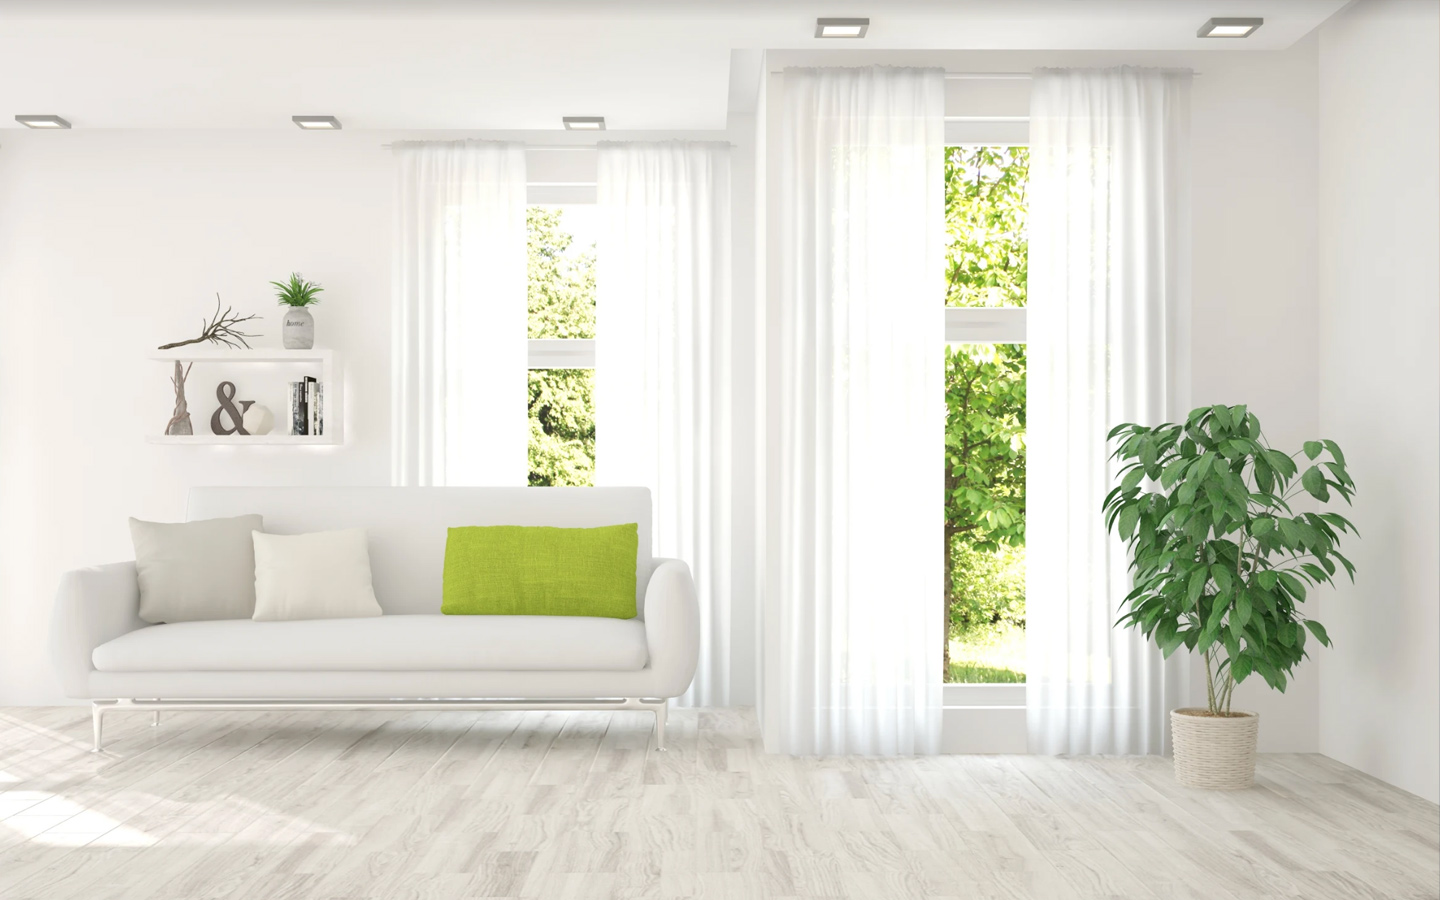 Home lightining tips to make sure furniture adds to the allure of lighting